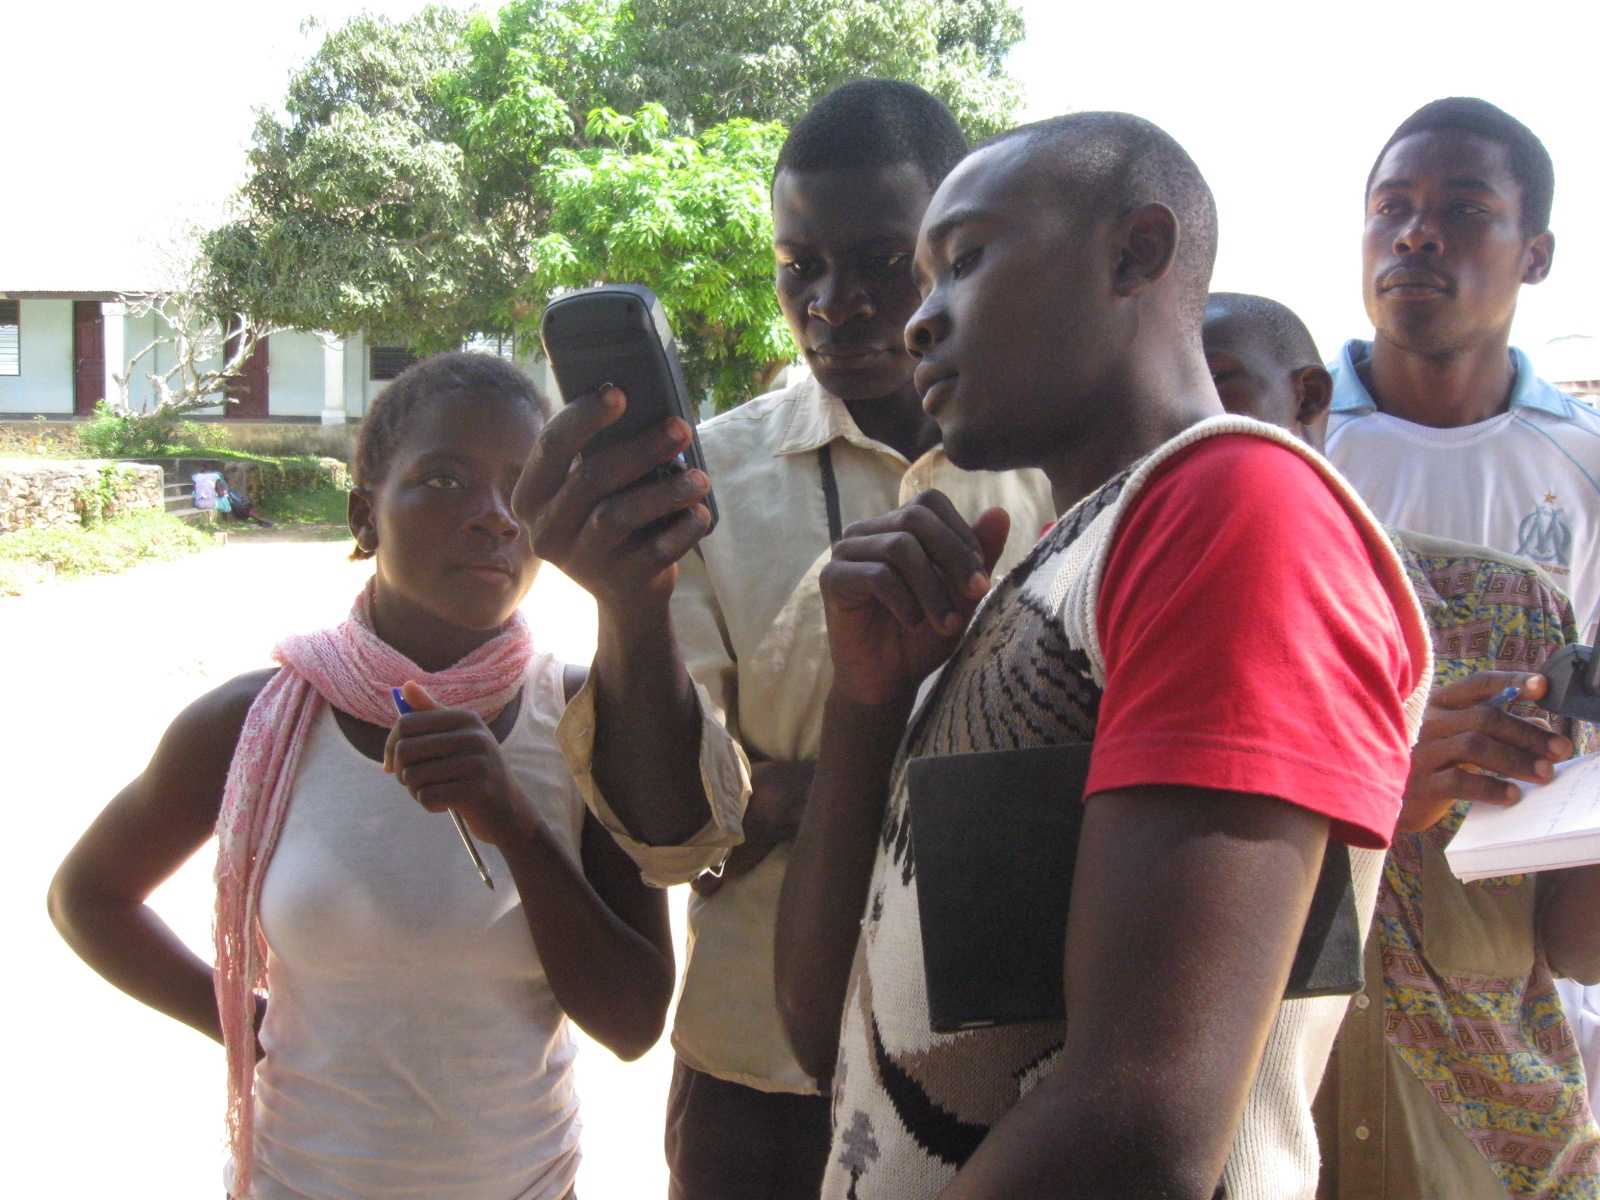 Young people in Okola, Cameroon learn how to use GPS units to create community maps